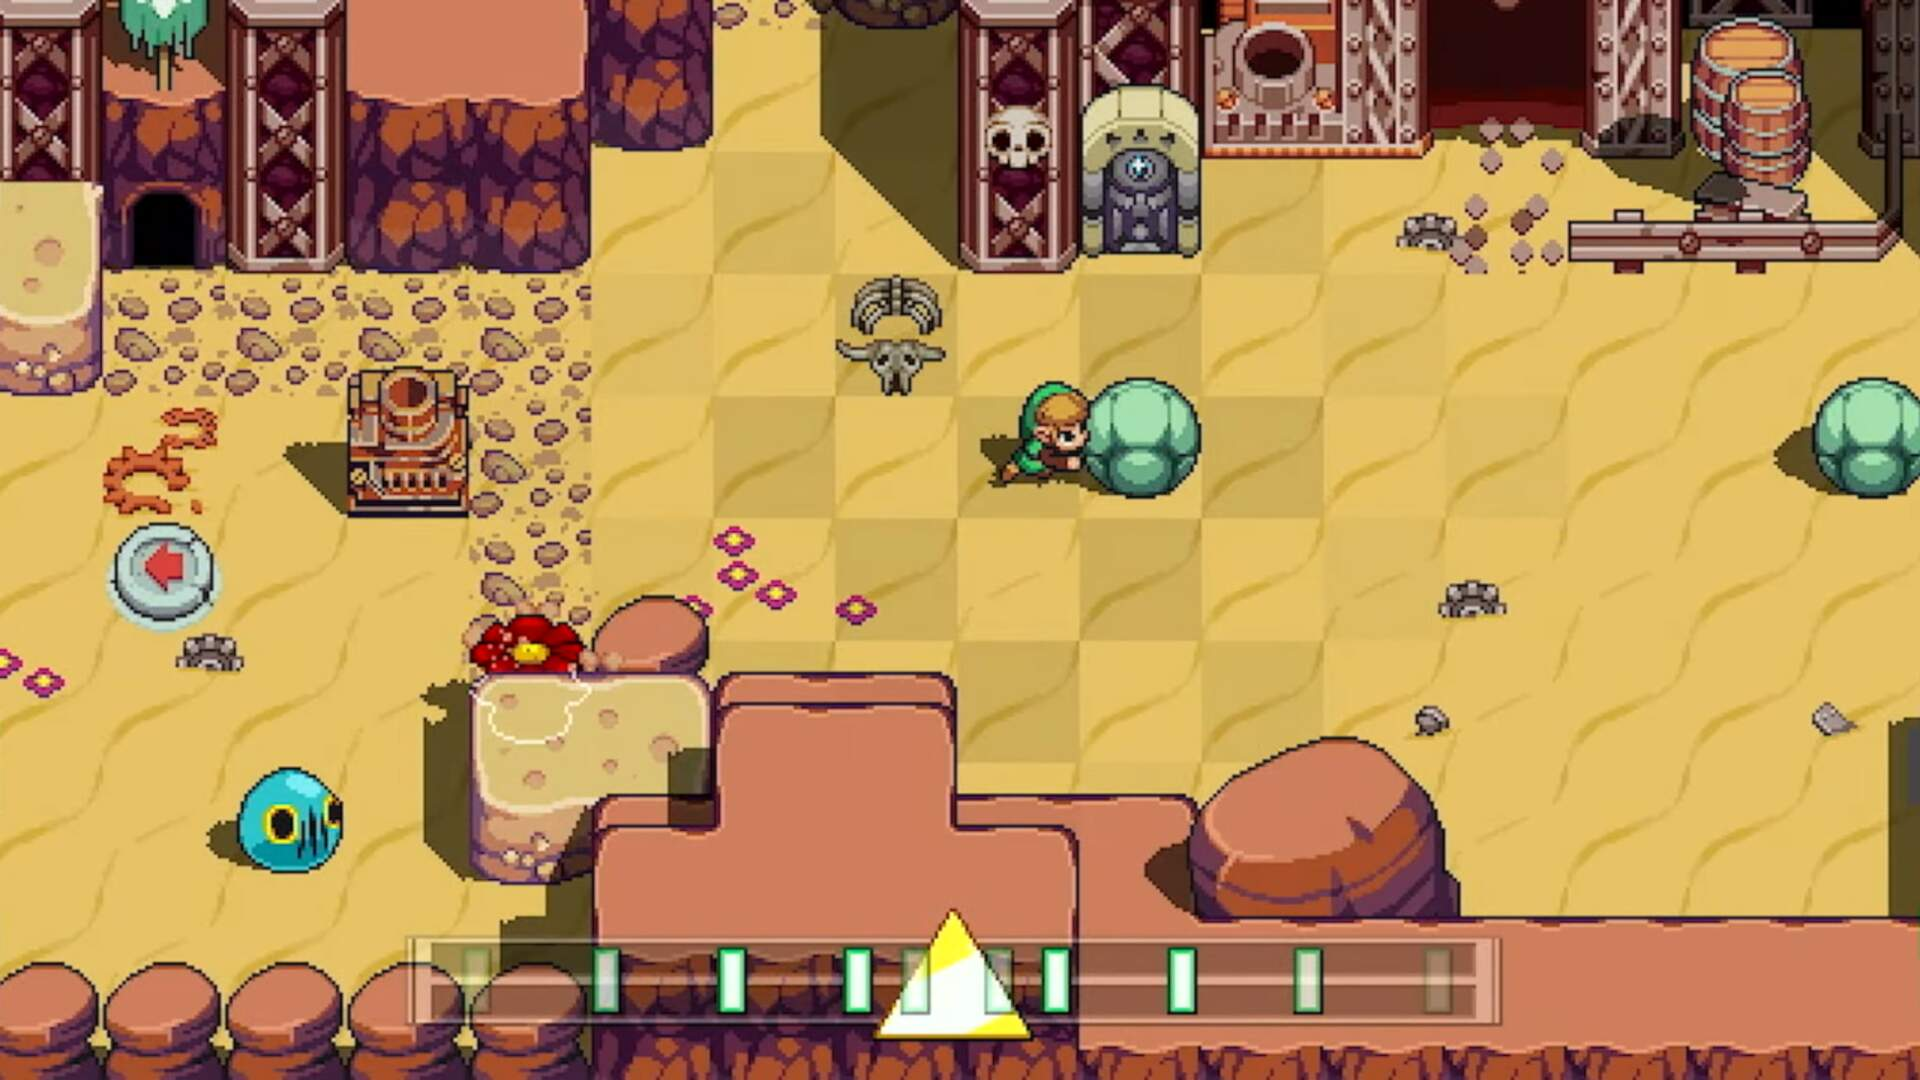 Zelda Crossover Rhythm Game Cadence of Hyrule is Coming in June